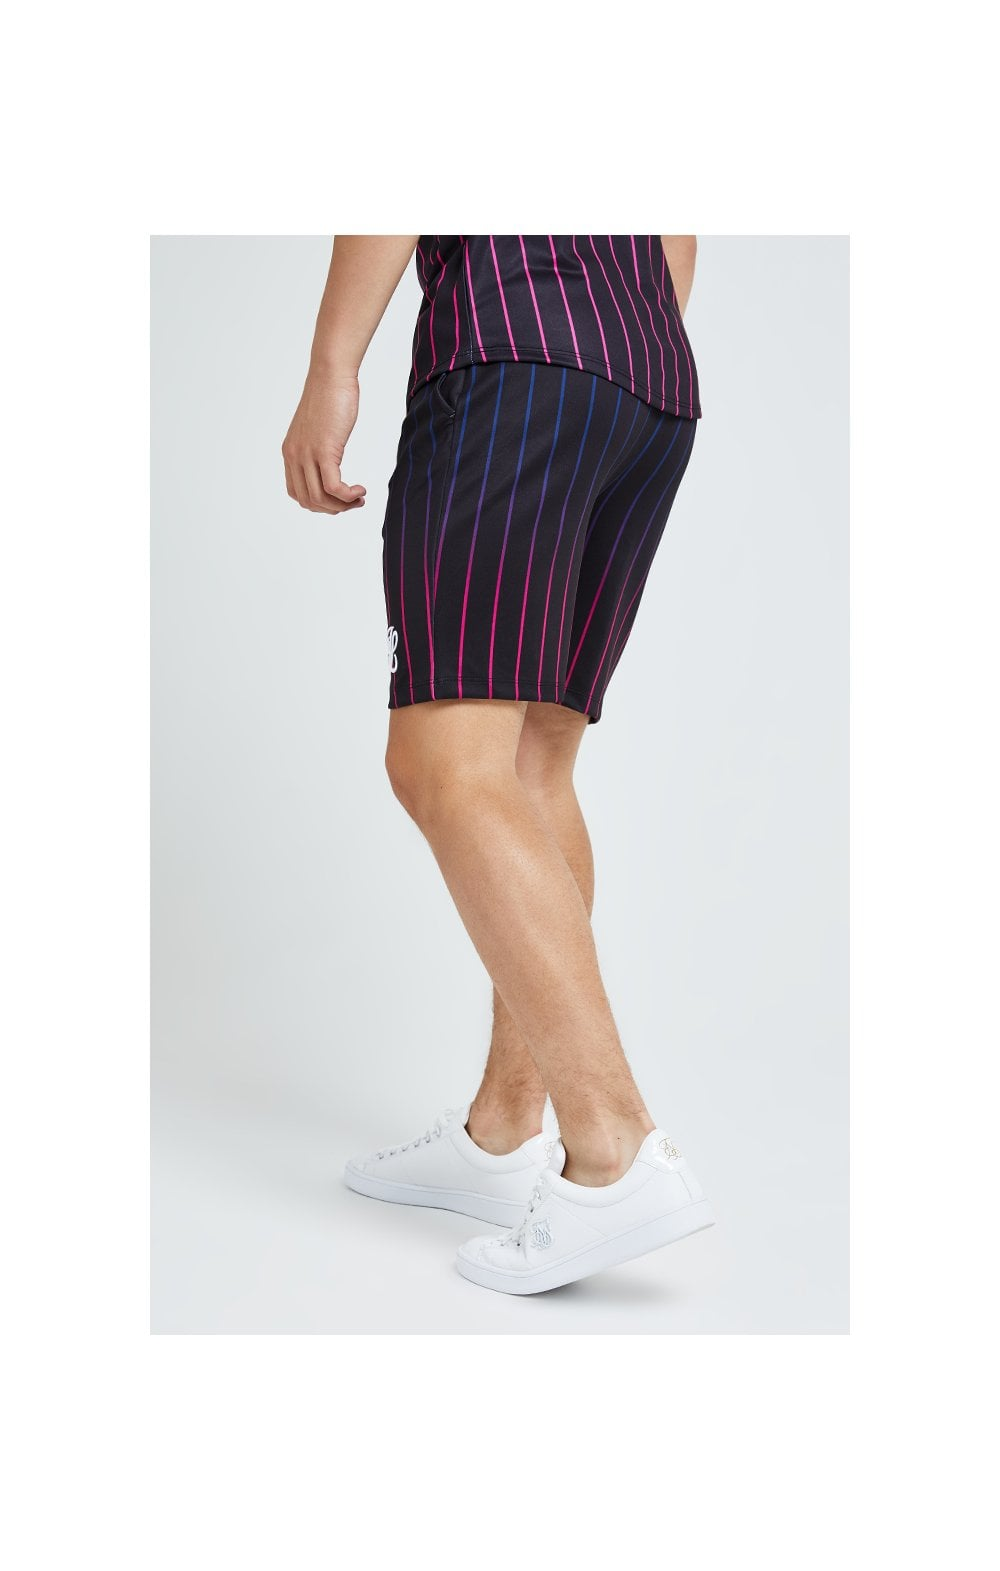 Illusive London Fade Stripe Shorts - Black (2)